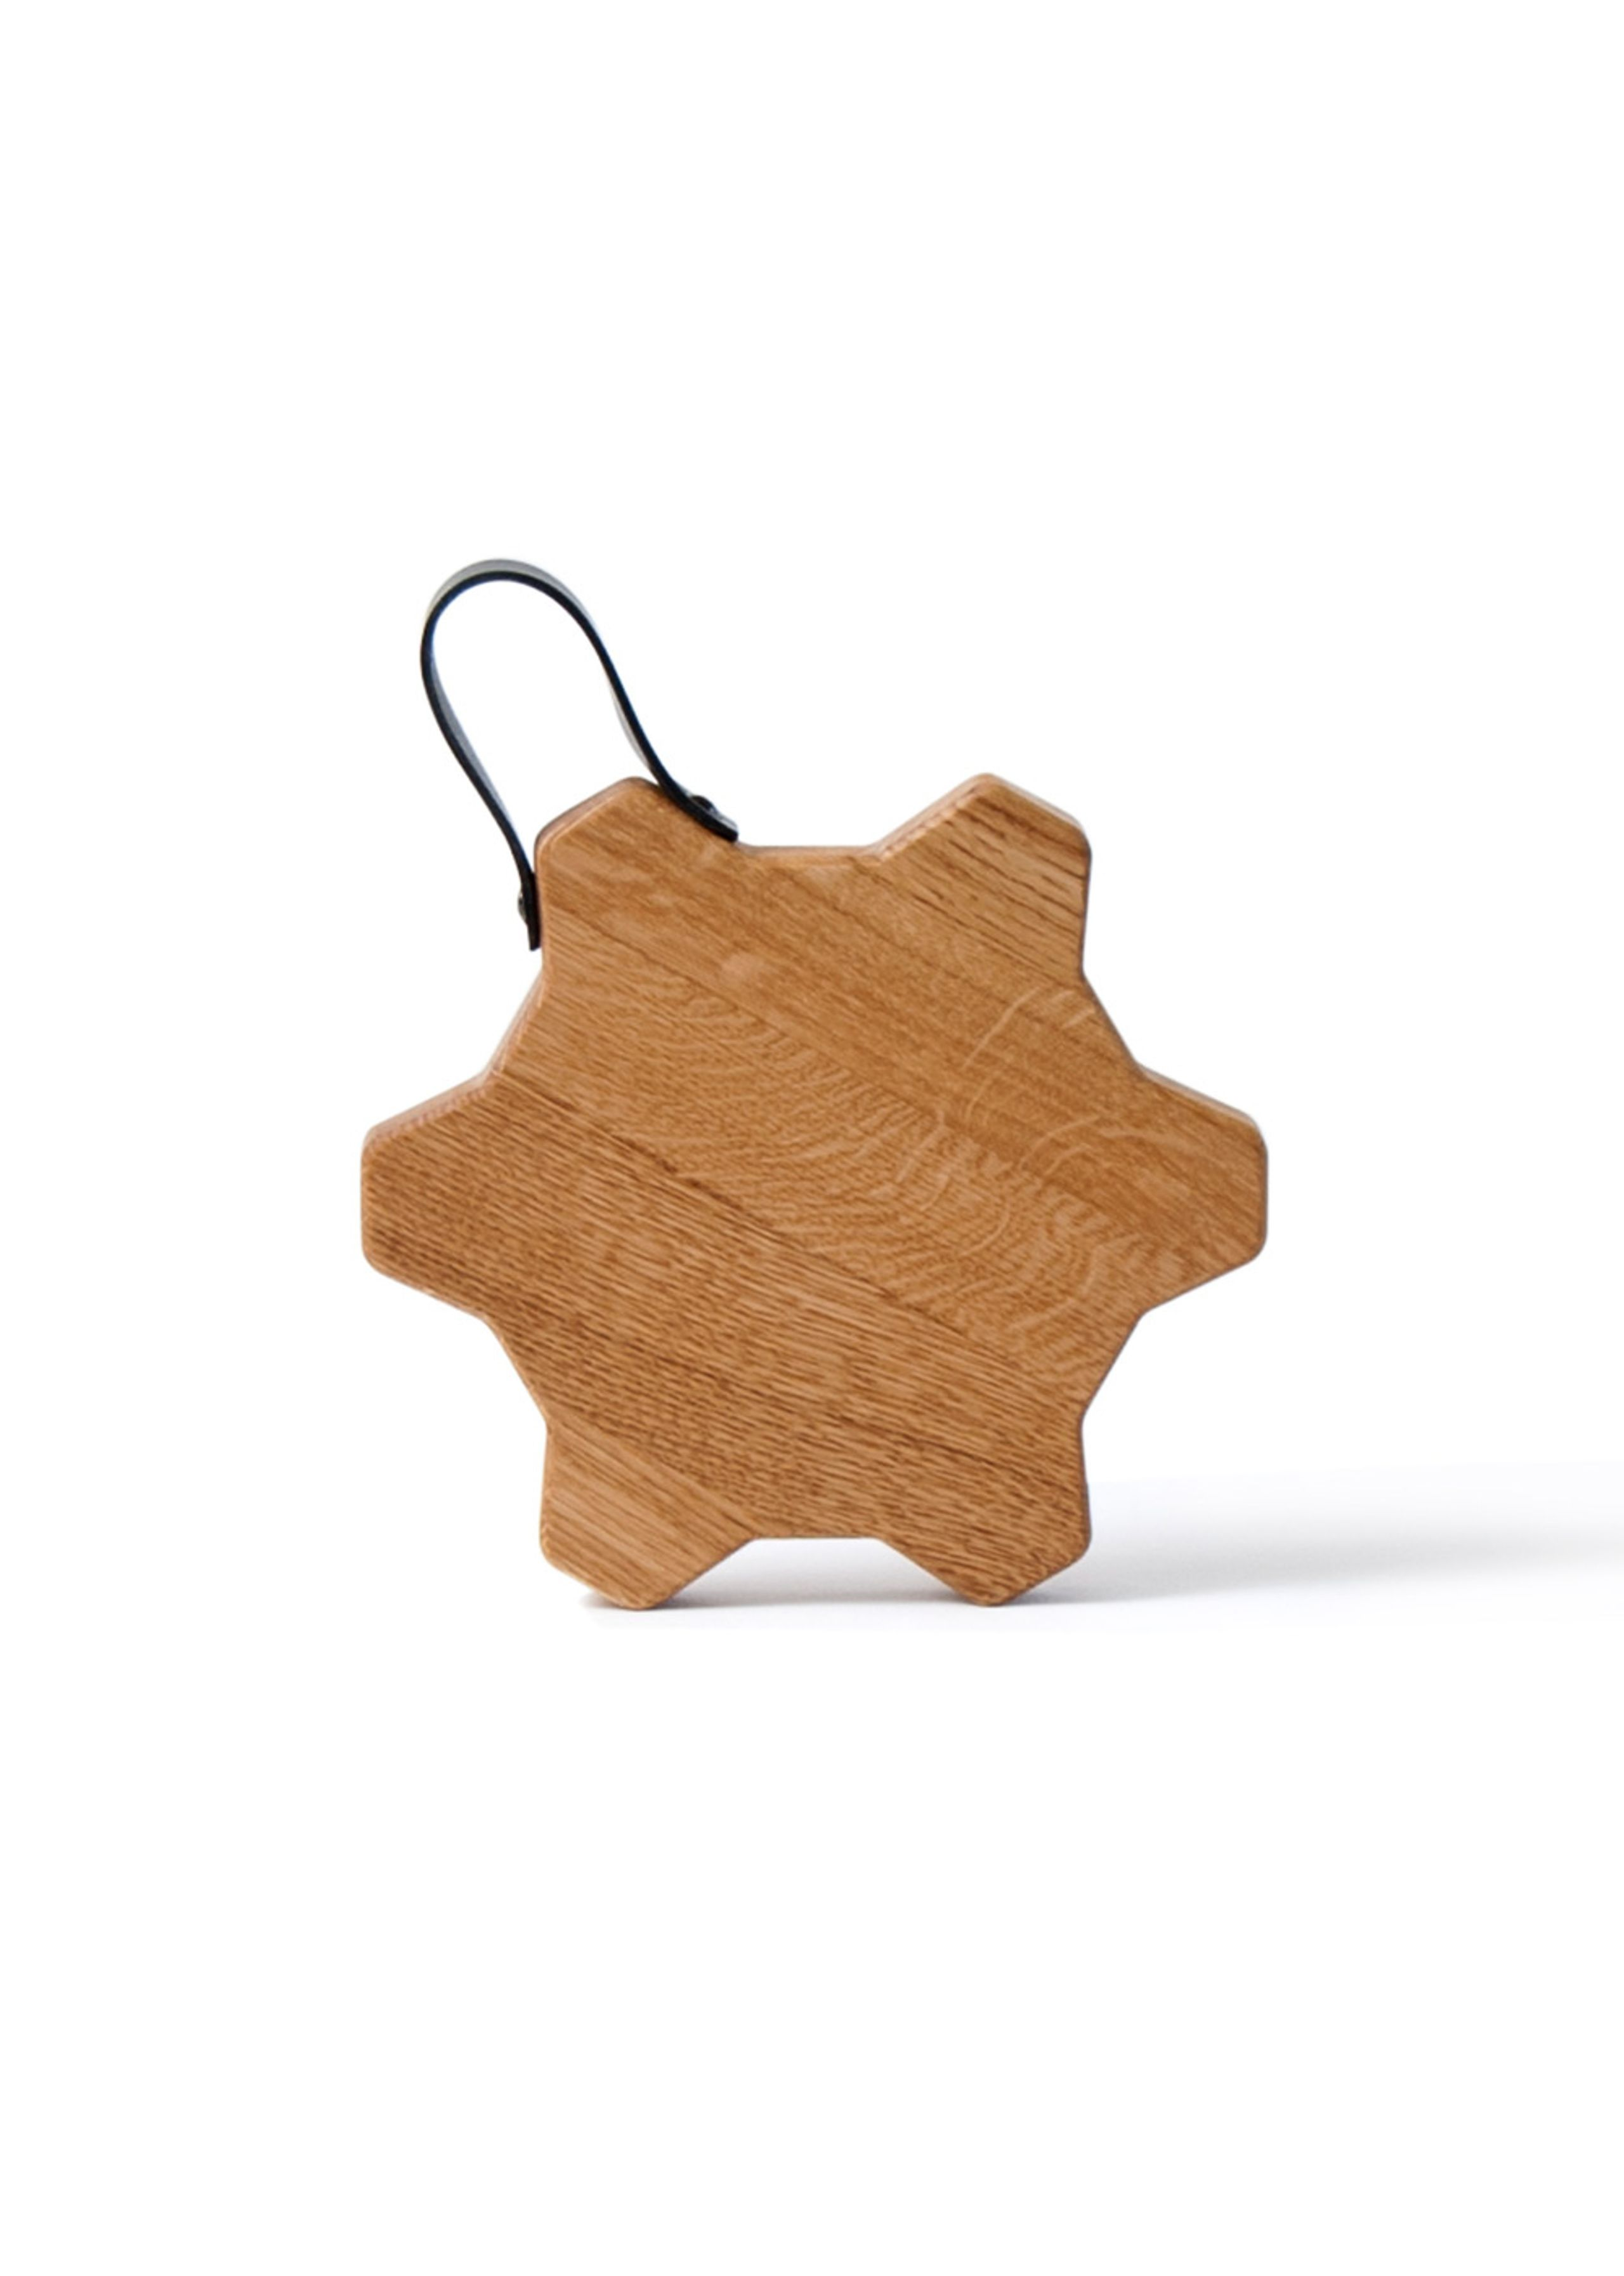 Transmission trivet/butter board